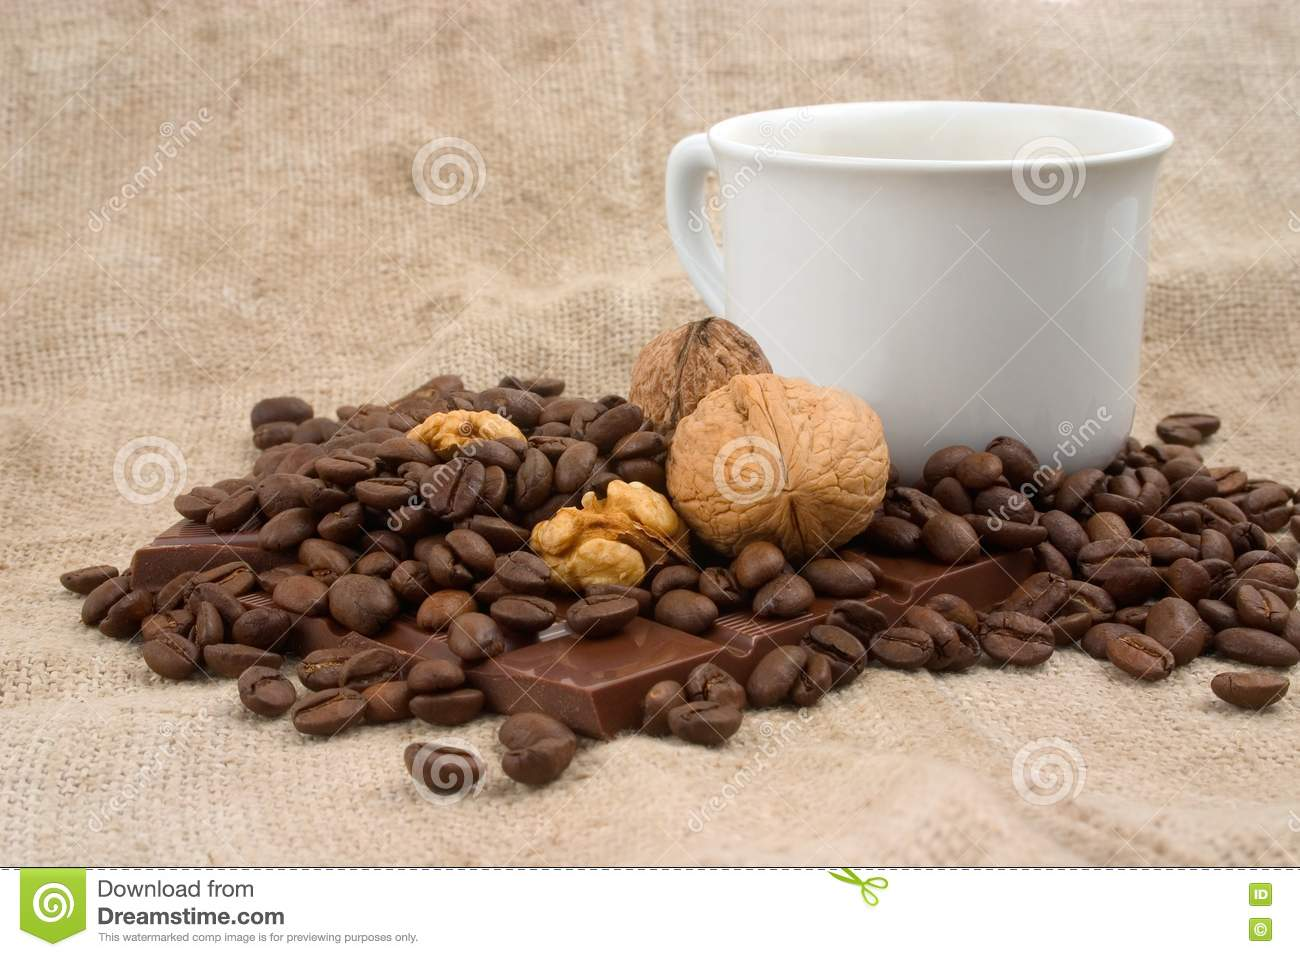 Cup Of Coffee, Walnuts, Coffee Beans And Chocolate Royalty Free Stock ...